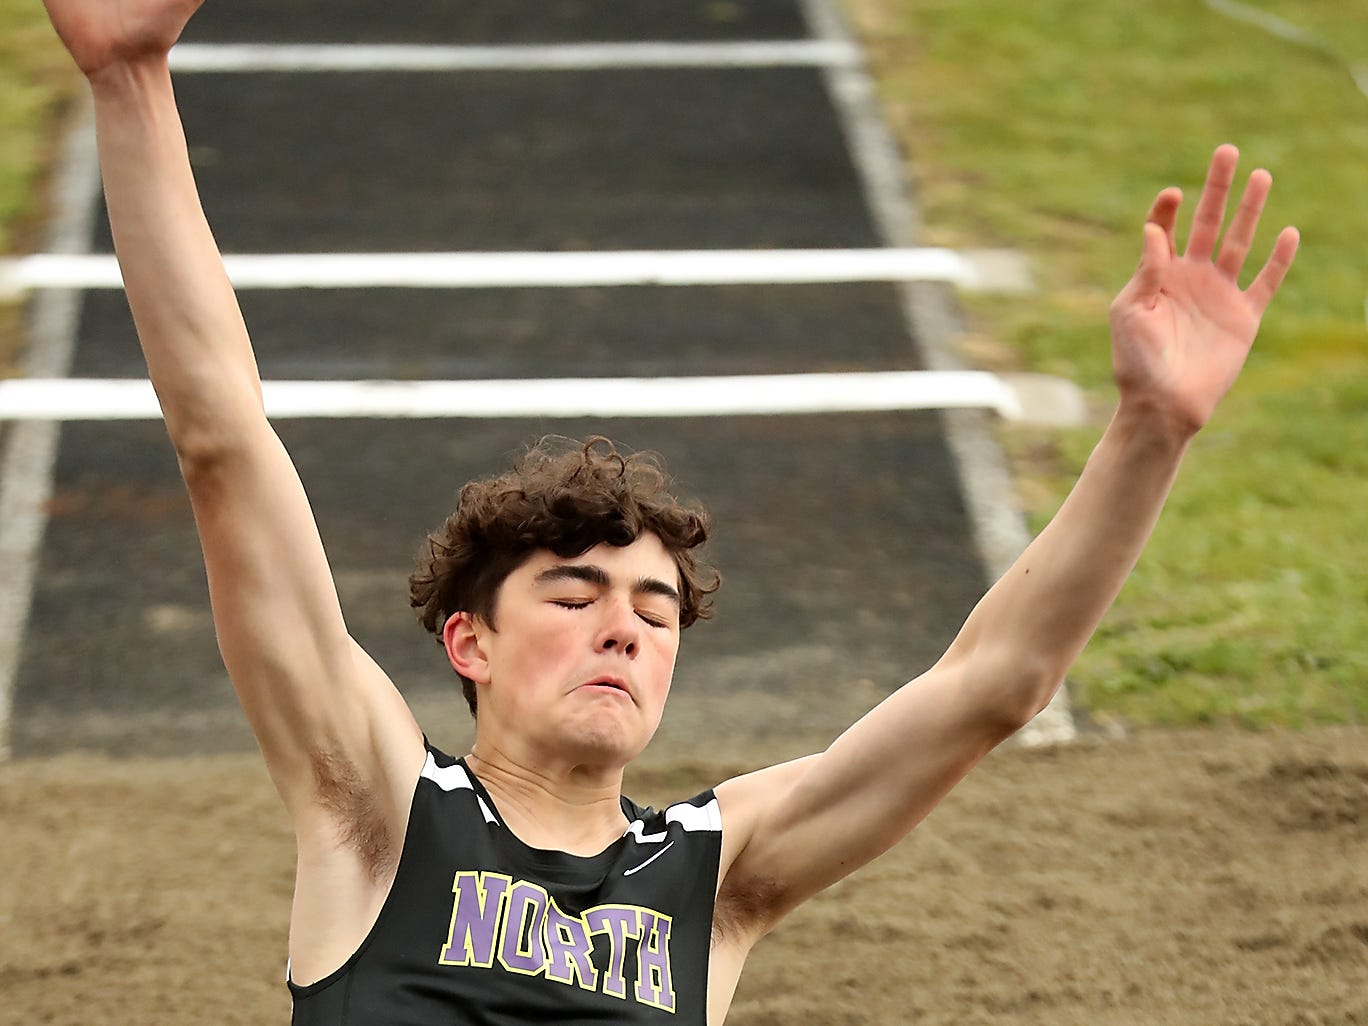 North Kitsap's Jonas La Tour hits the dirt while competing in the triple jump during the Lil' Norway Invitational at North Kitsap High School in Poulsbo on Saturday, April13, 2019.